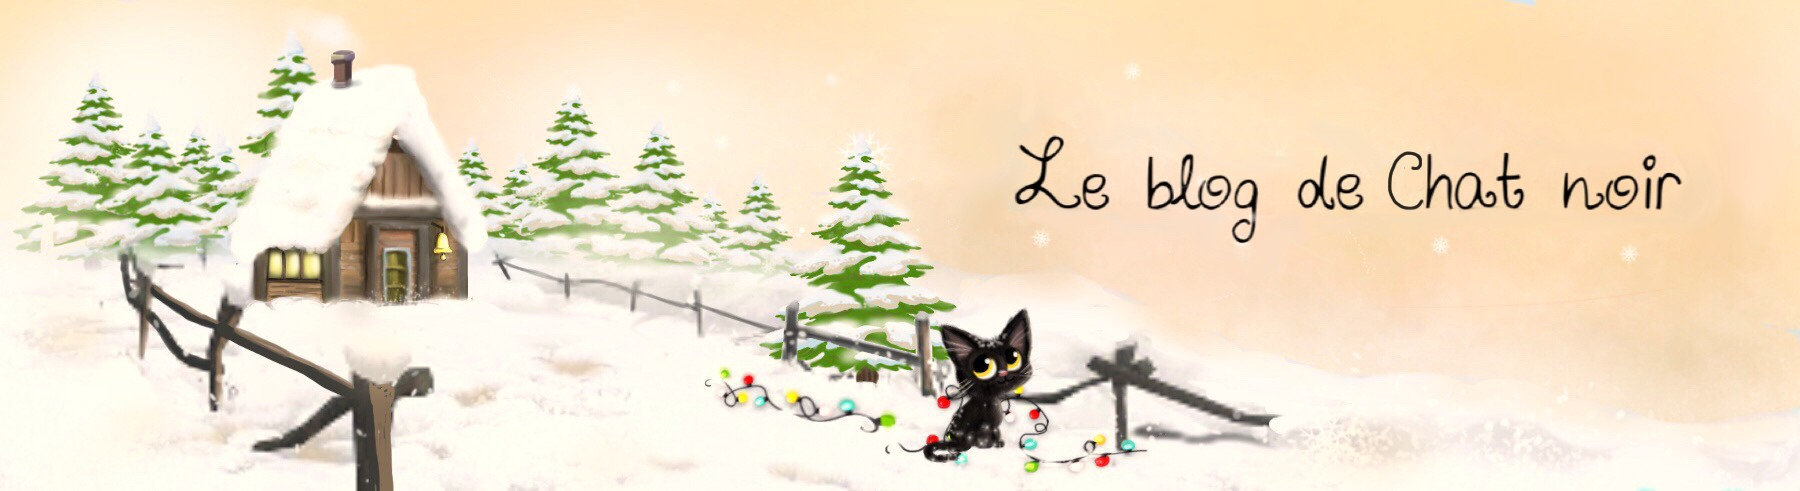 Le blog de Chat noir